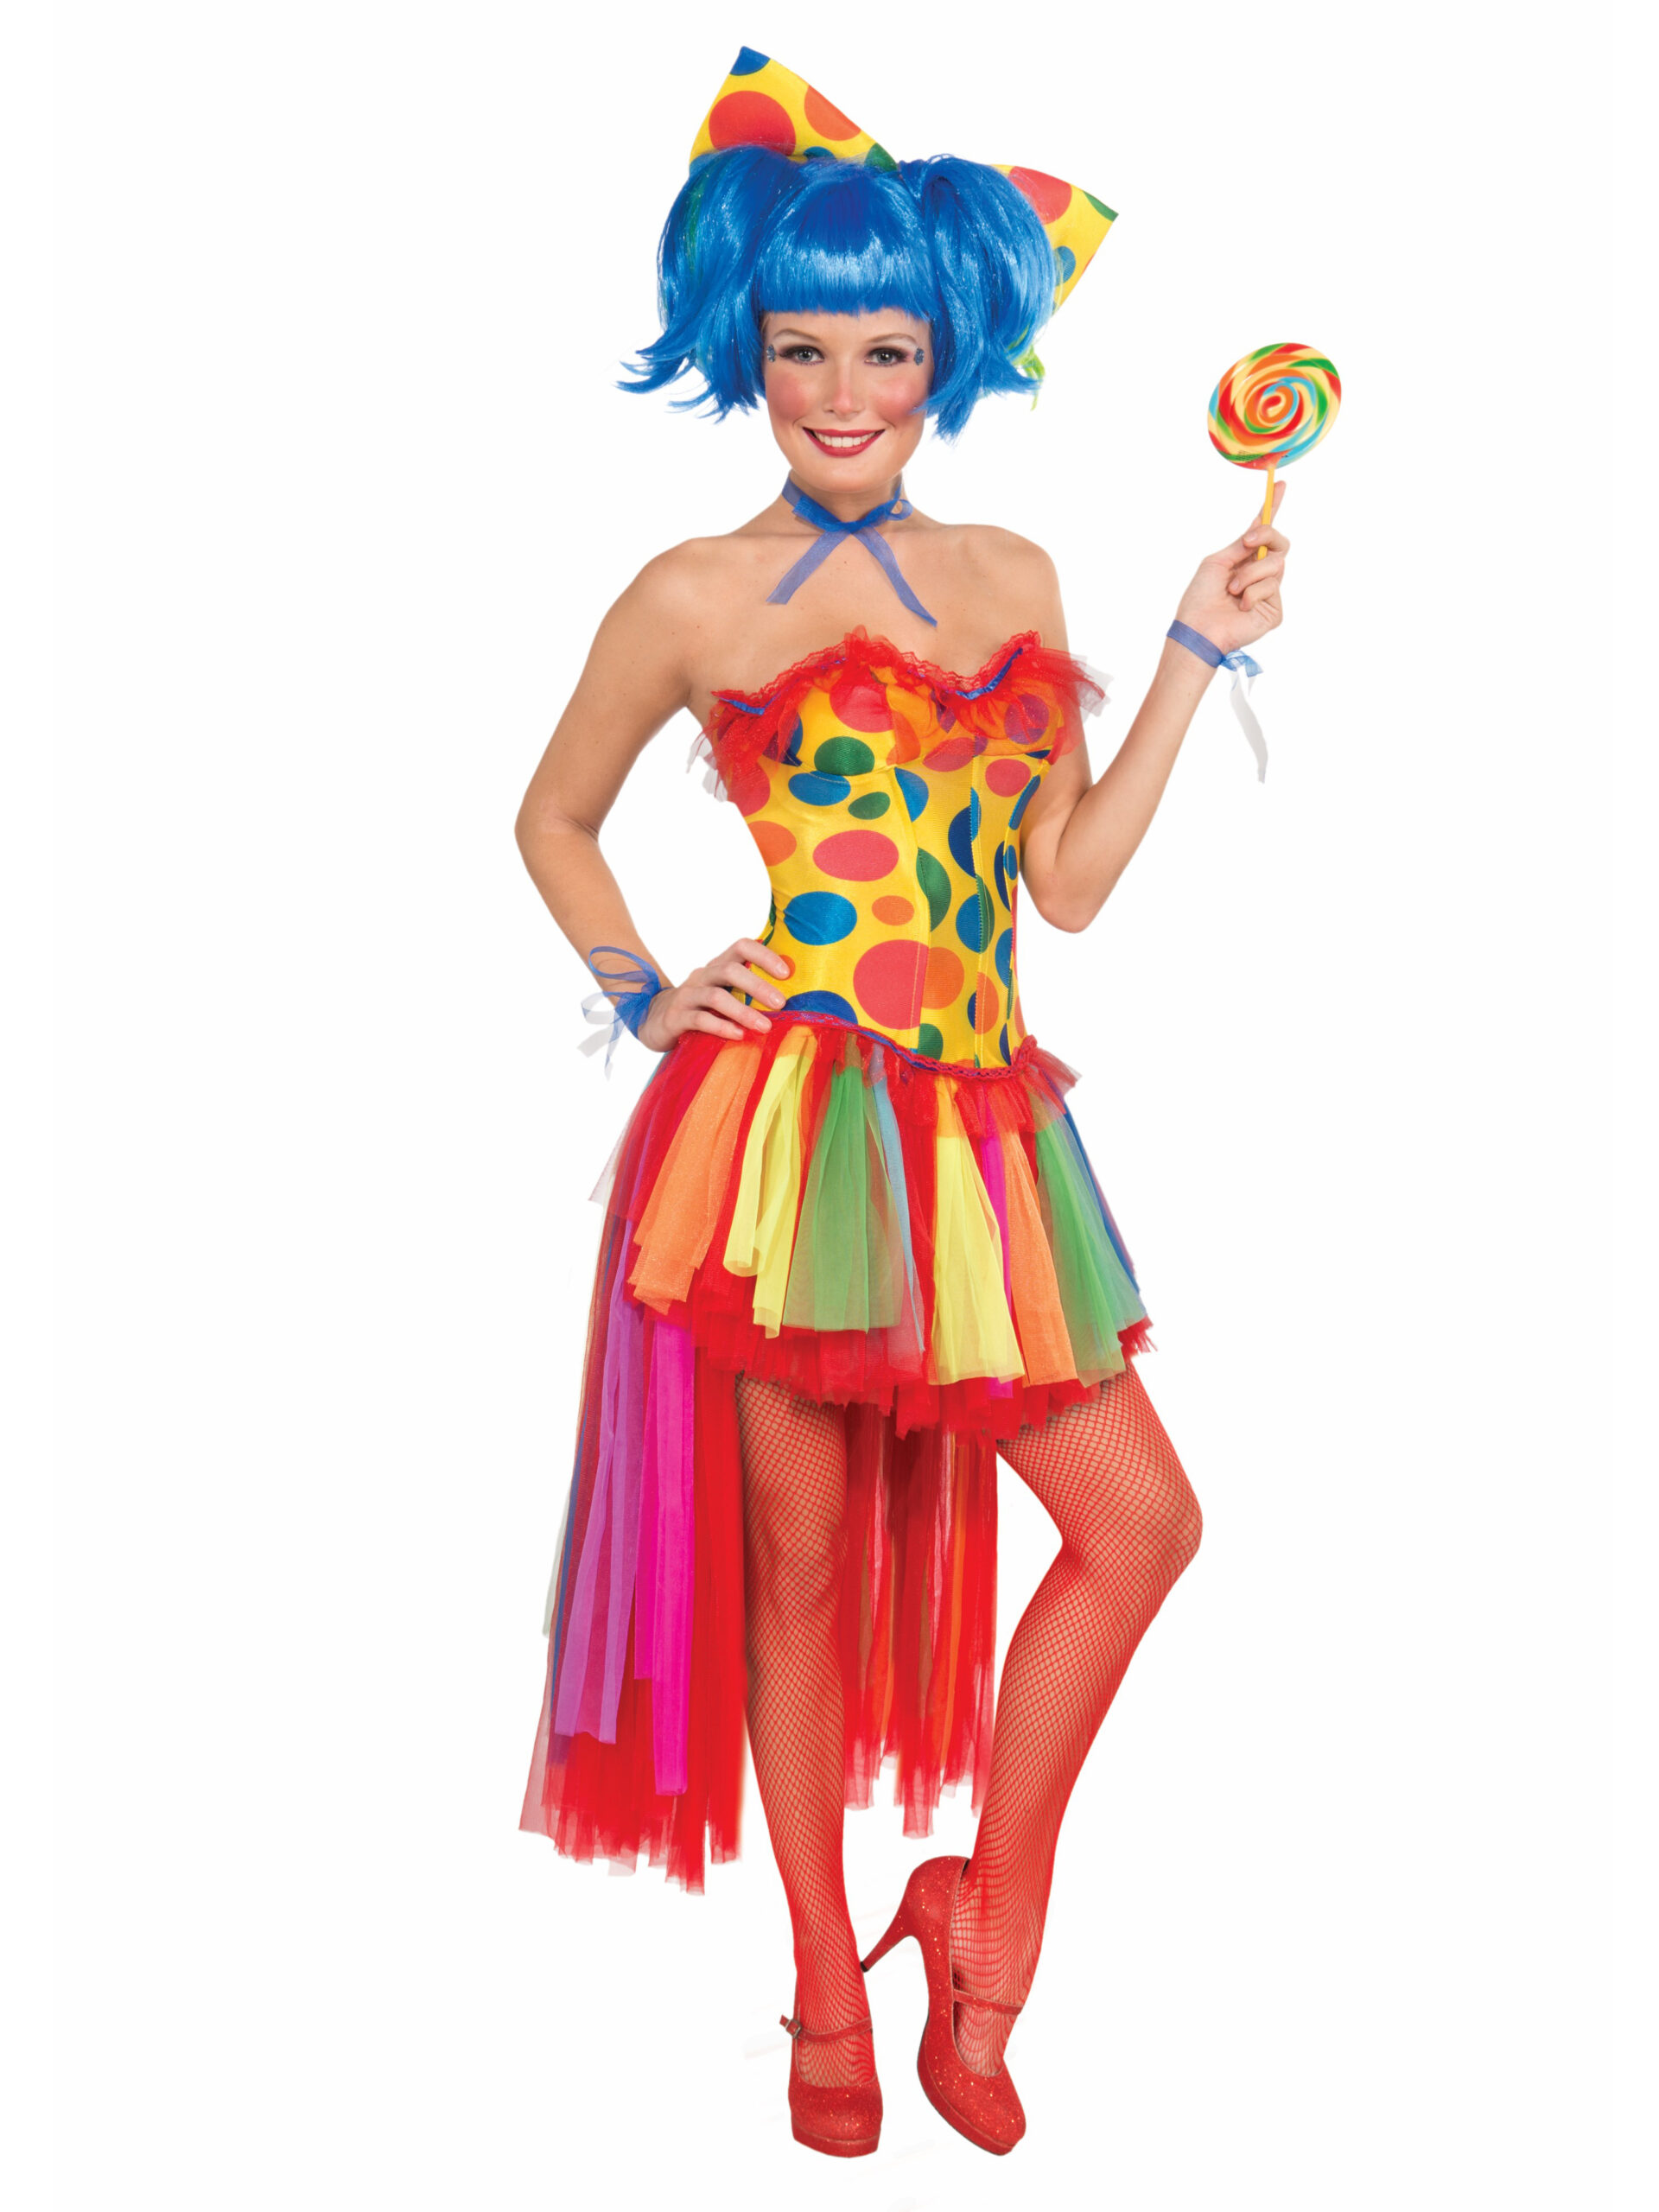 adult lady in strapless clown boustier with colorful polka dots and rainbow tutu skirt holding lollipop with blue wig and big polka dot bow